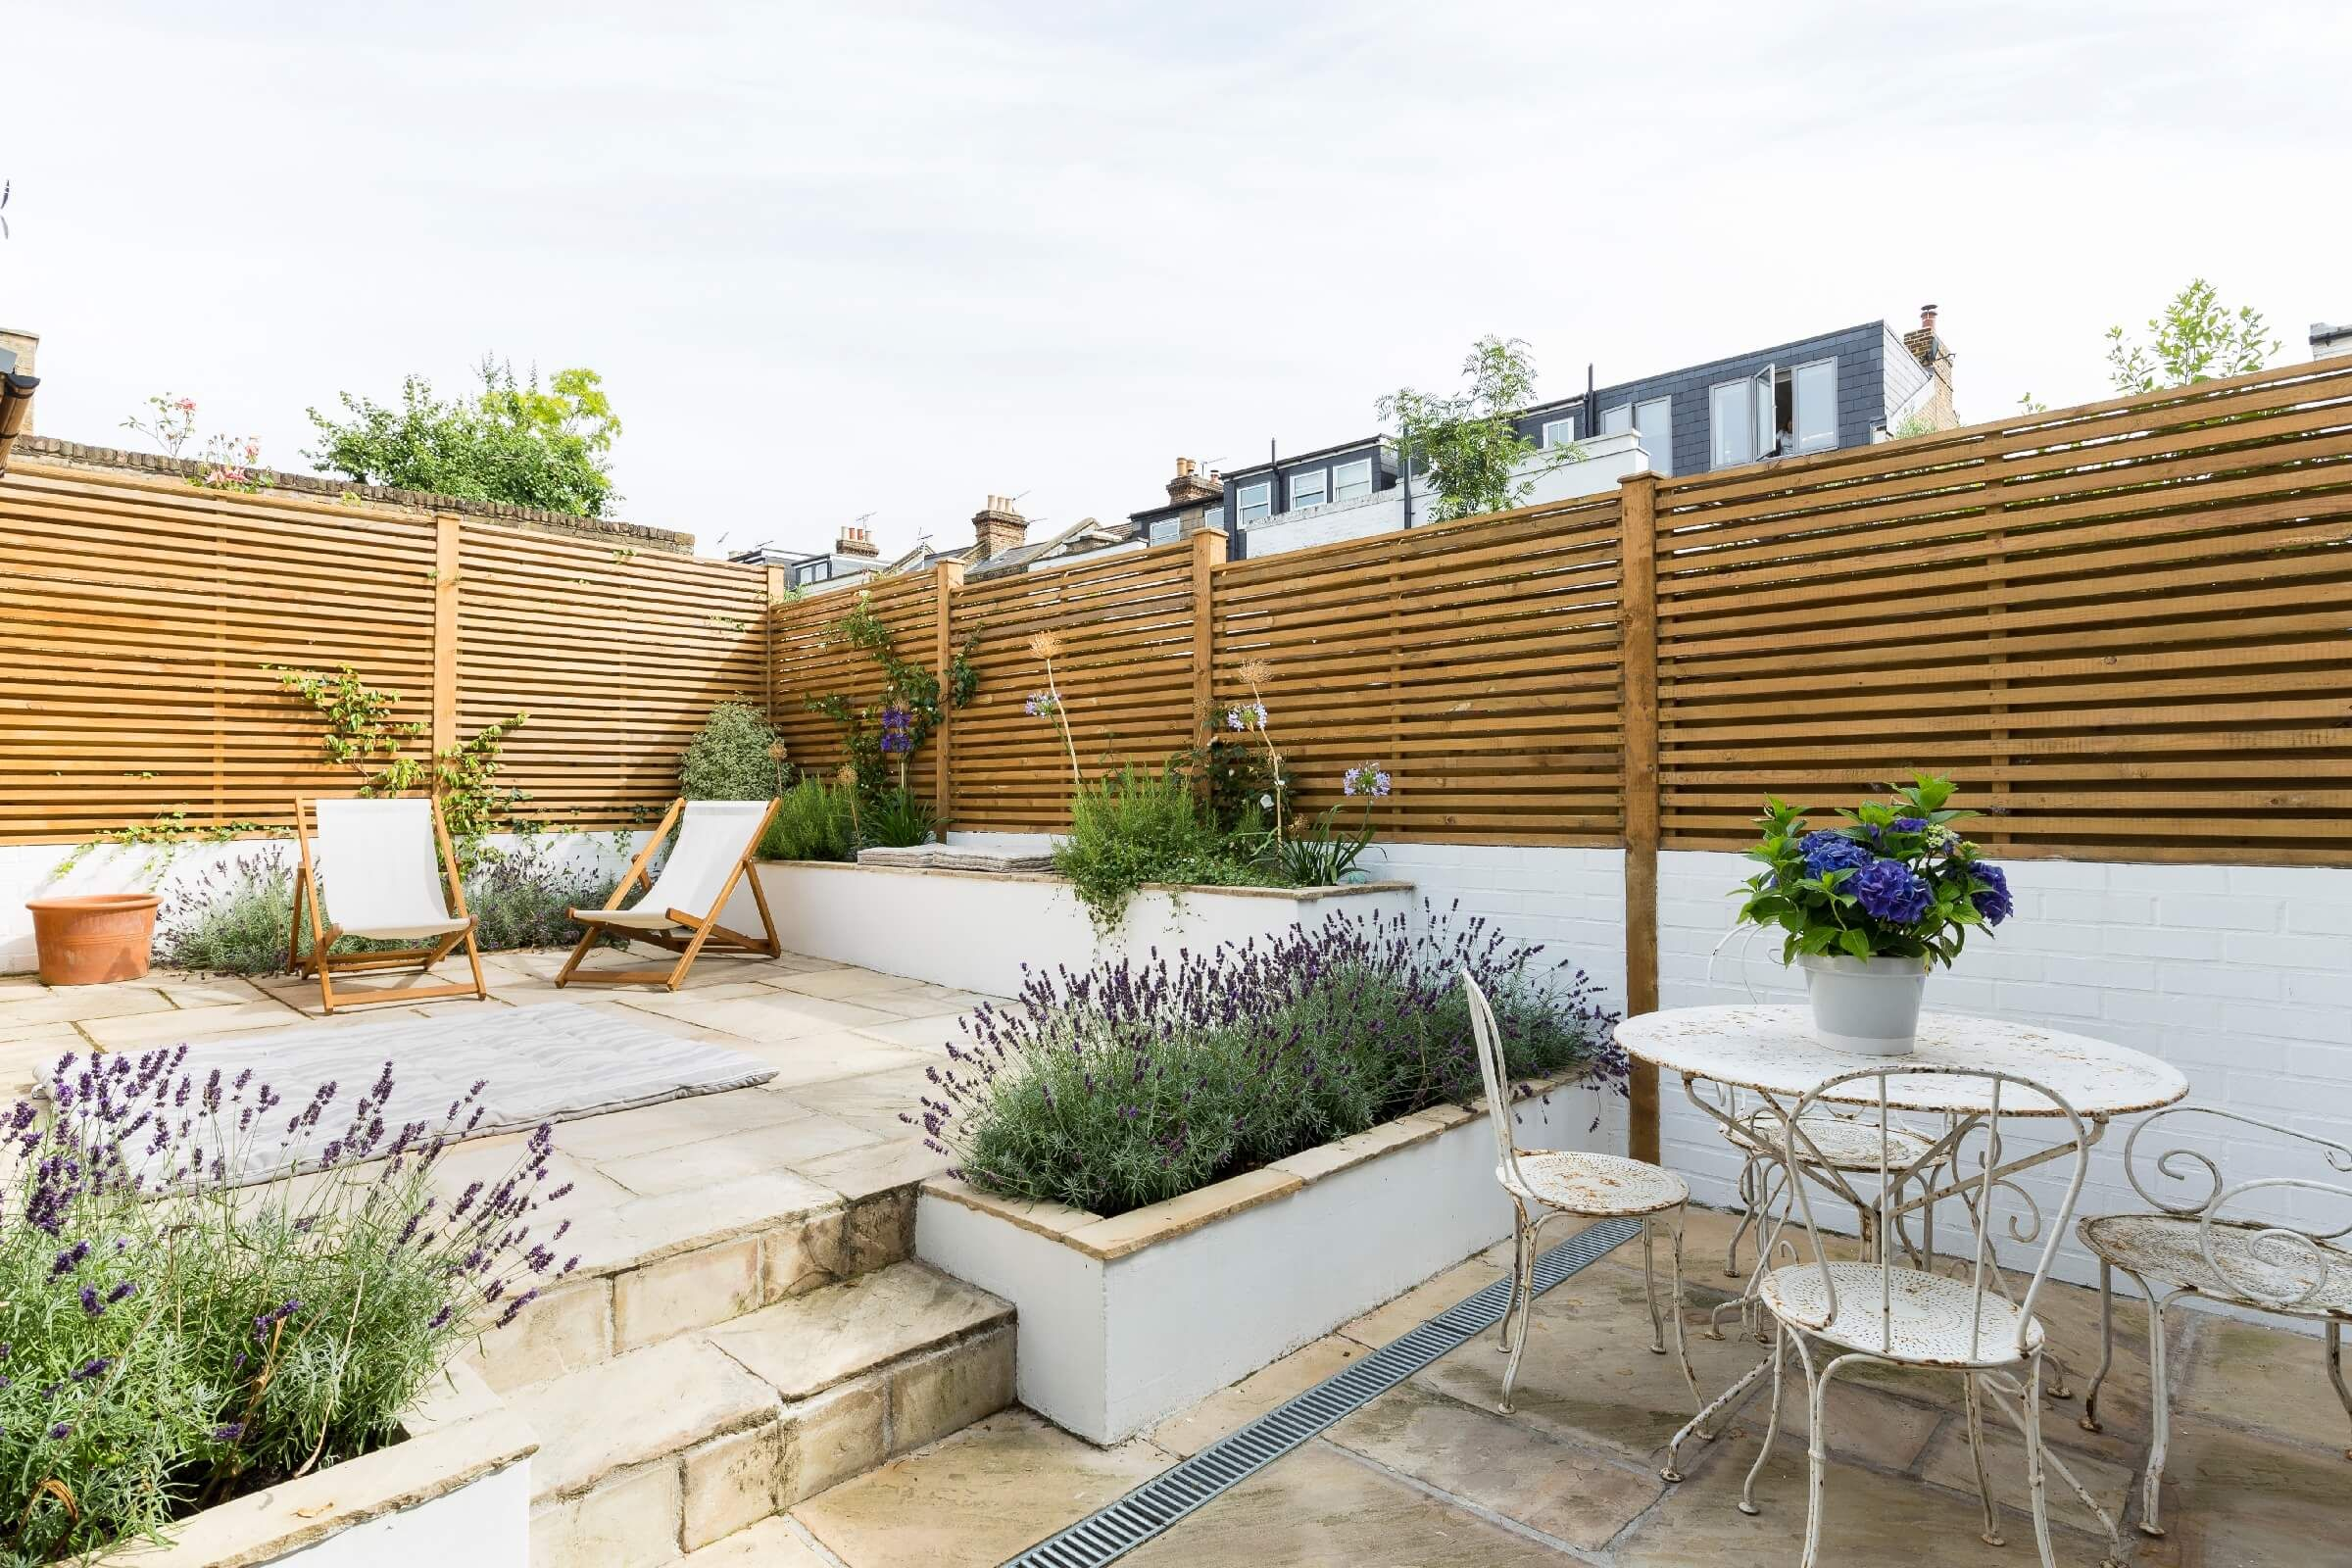 Outdoor Terrace With Wooden Fence With Lavender - Nonagonstyle